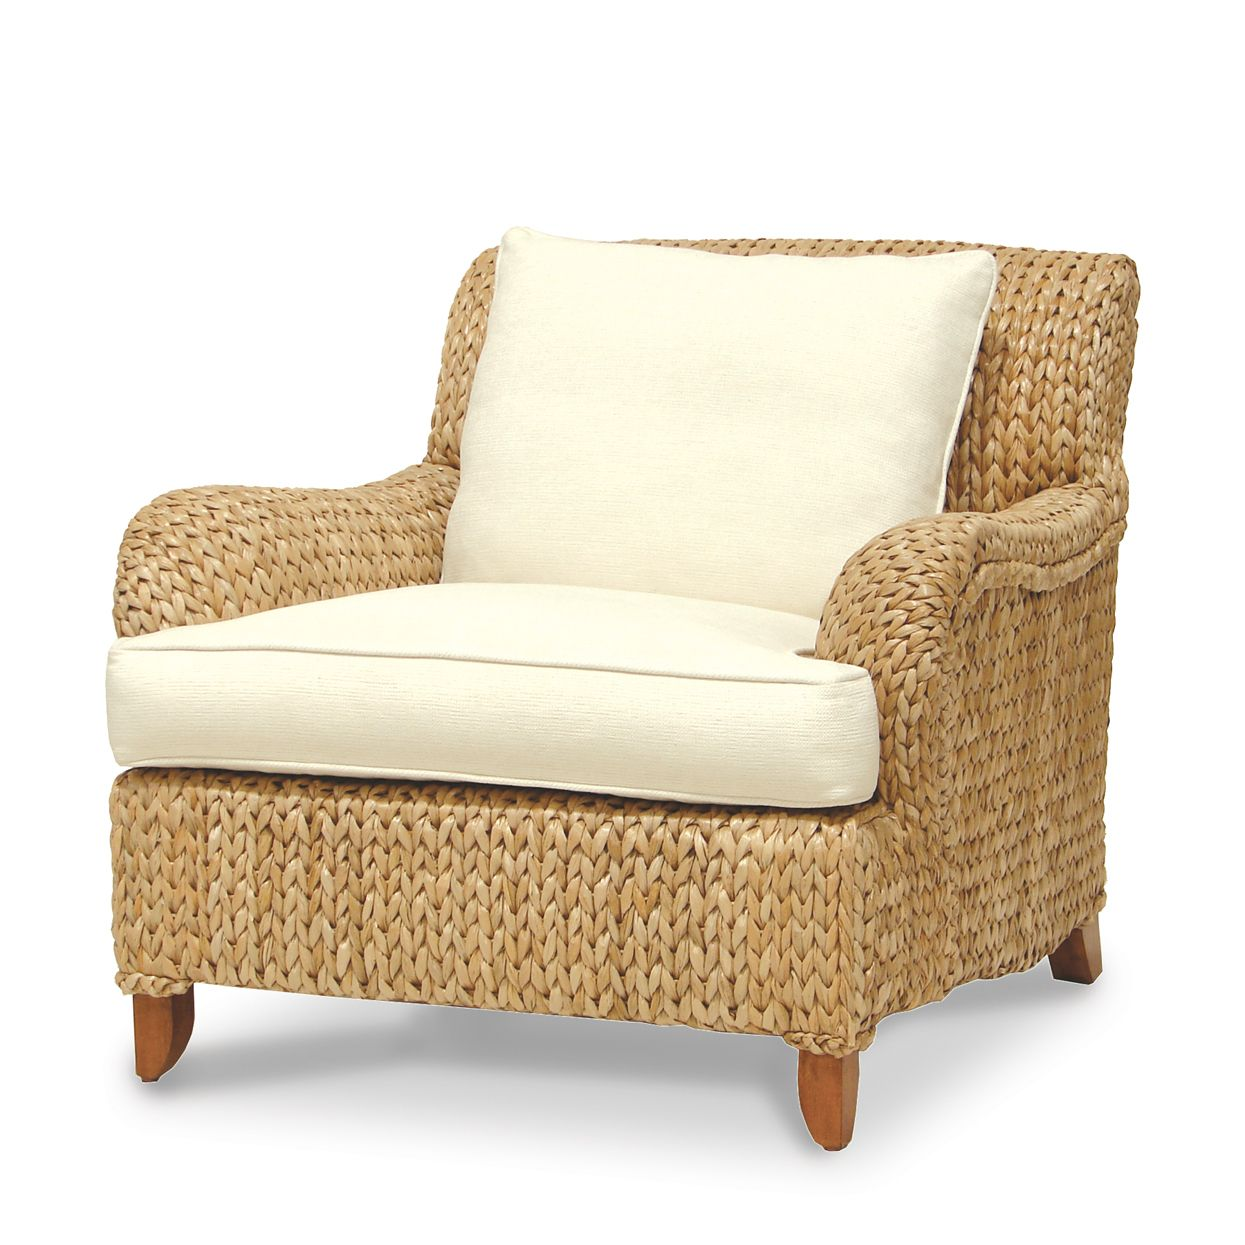 Go Green With Wicker Seagrass Furniture: Cozy Seagrass Furniture Armchair  With White Slip Covers